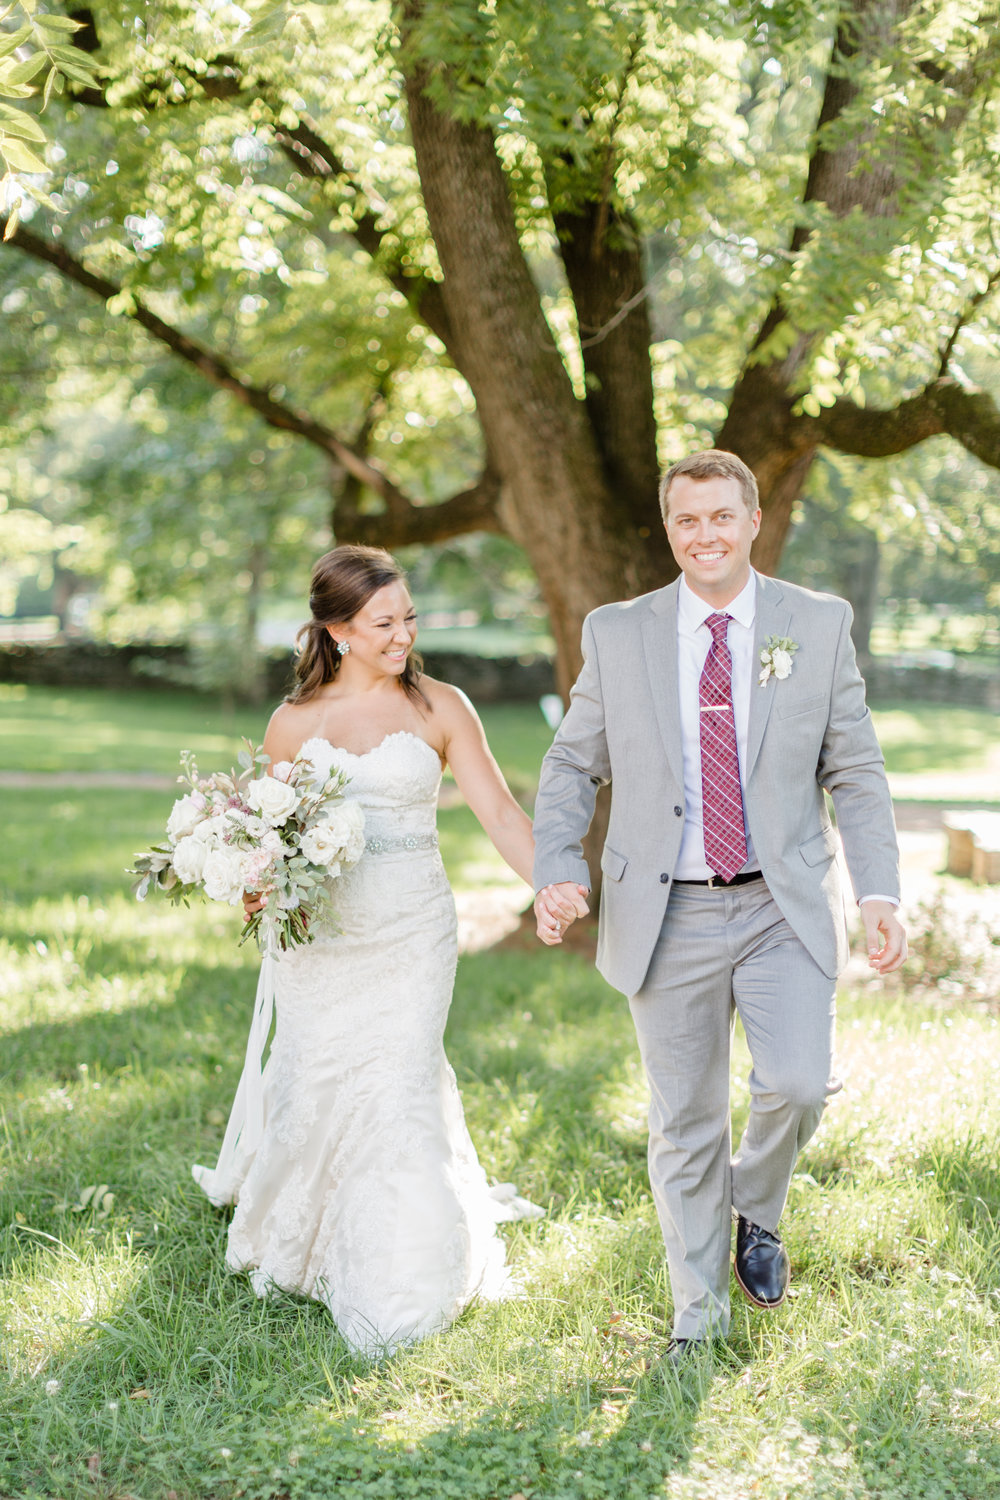 Belle Meade Plantation - Summer Wedding - Nashville, TN